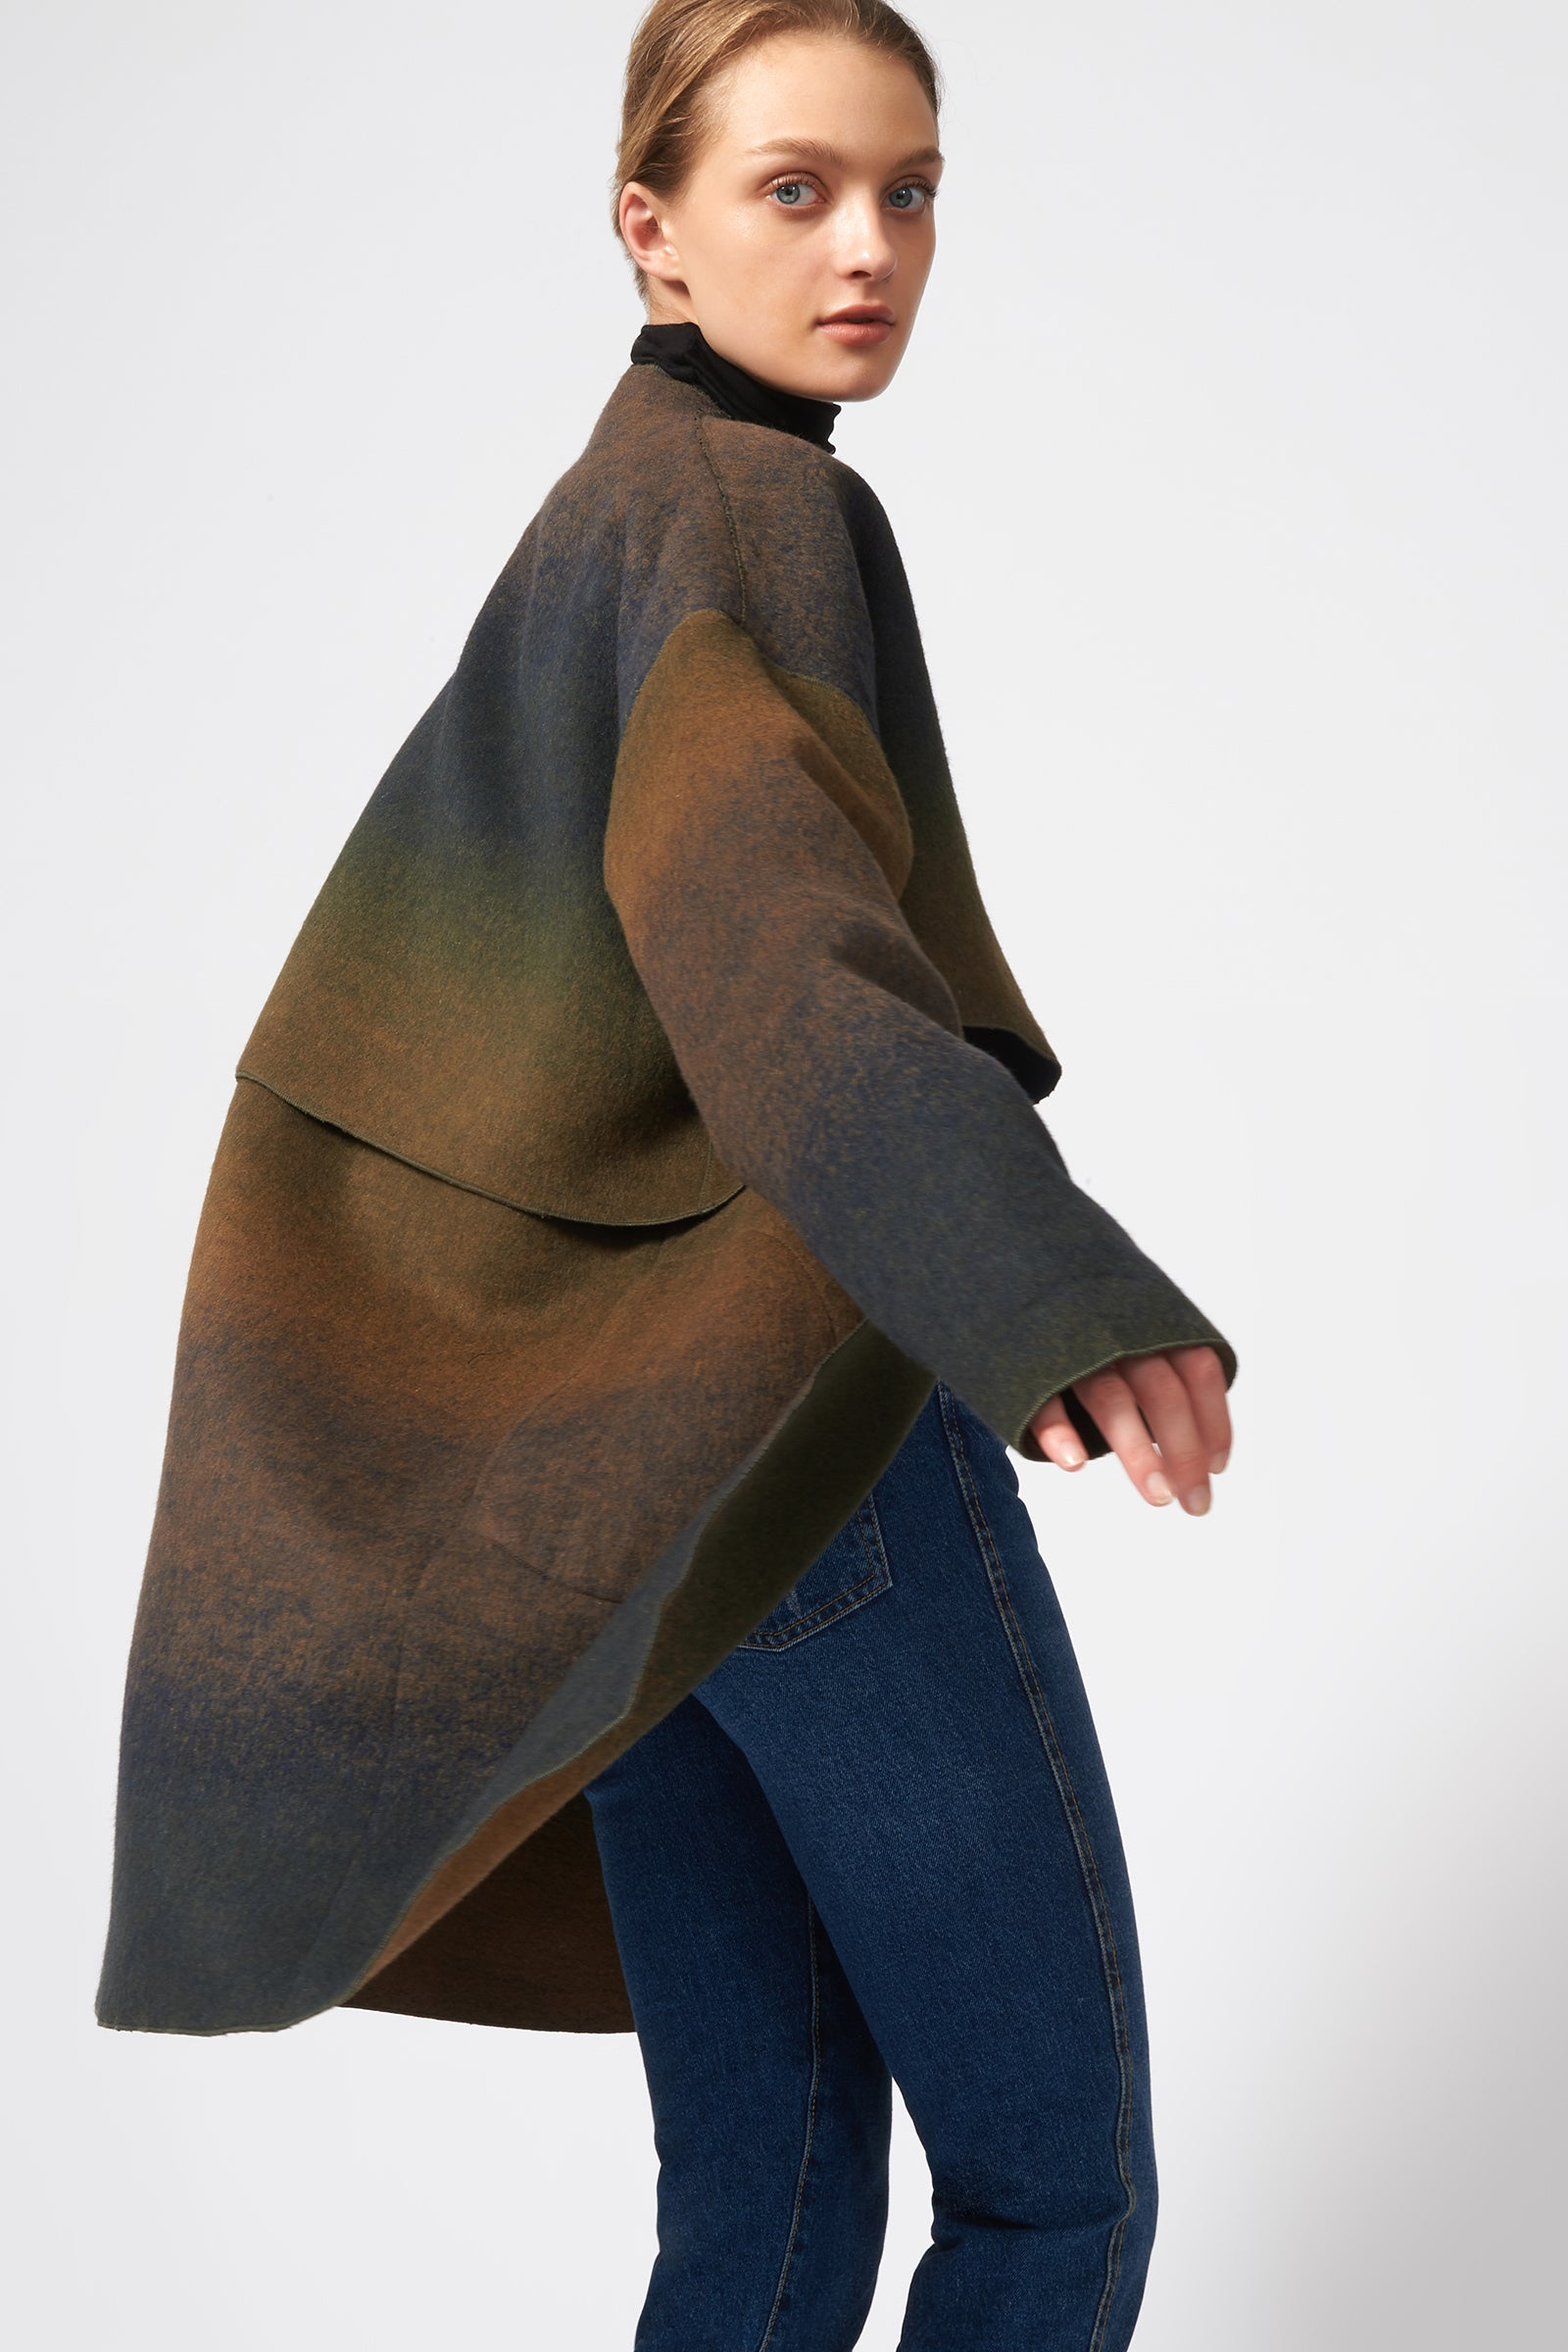 Kal Rieman Cape Kimono Coat in Italian Ombre on Model Side View